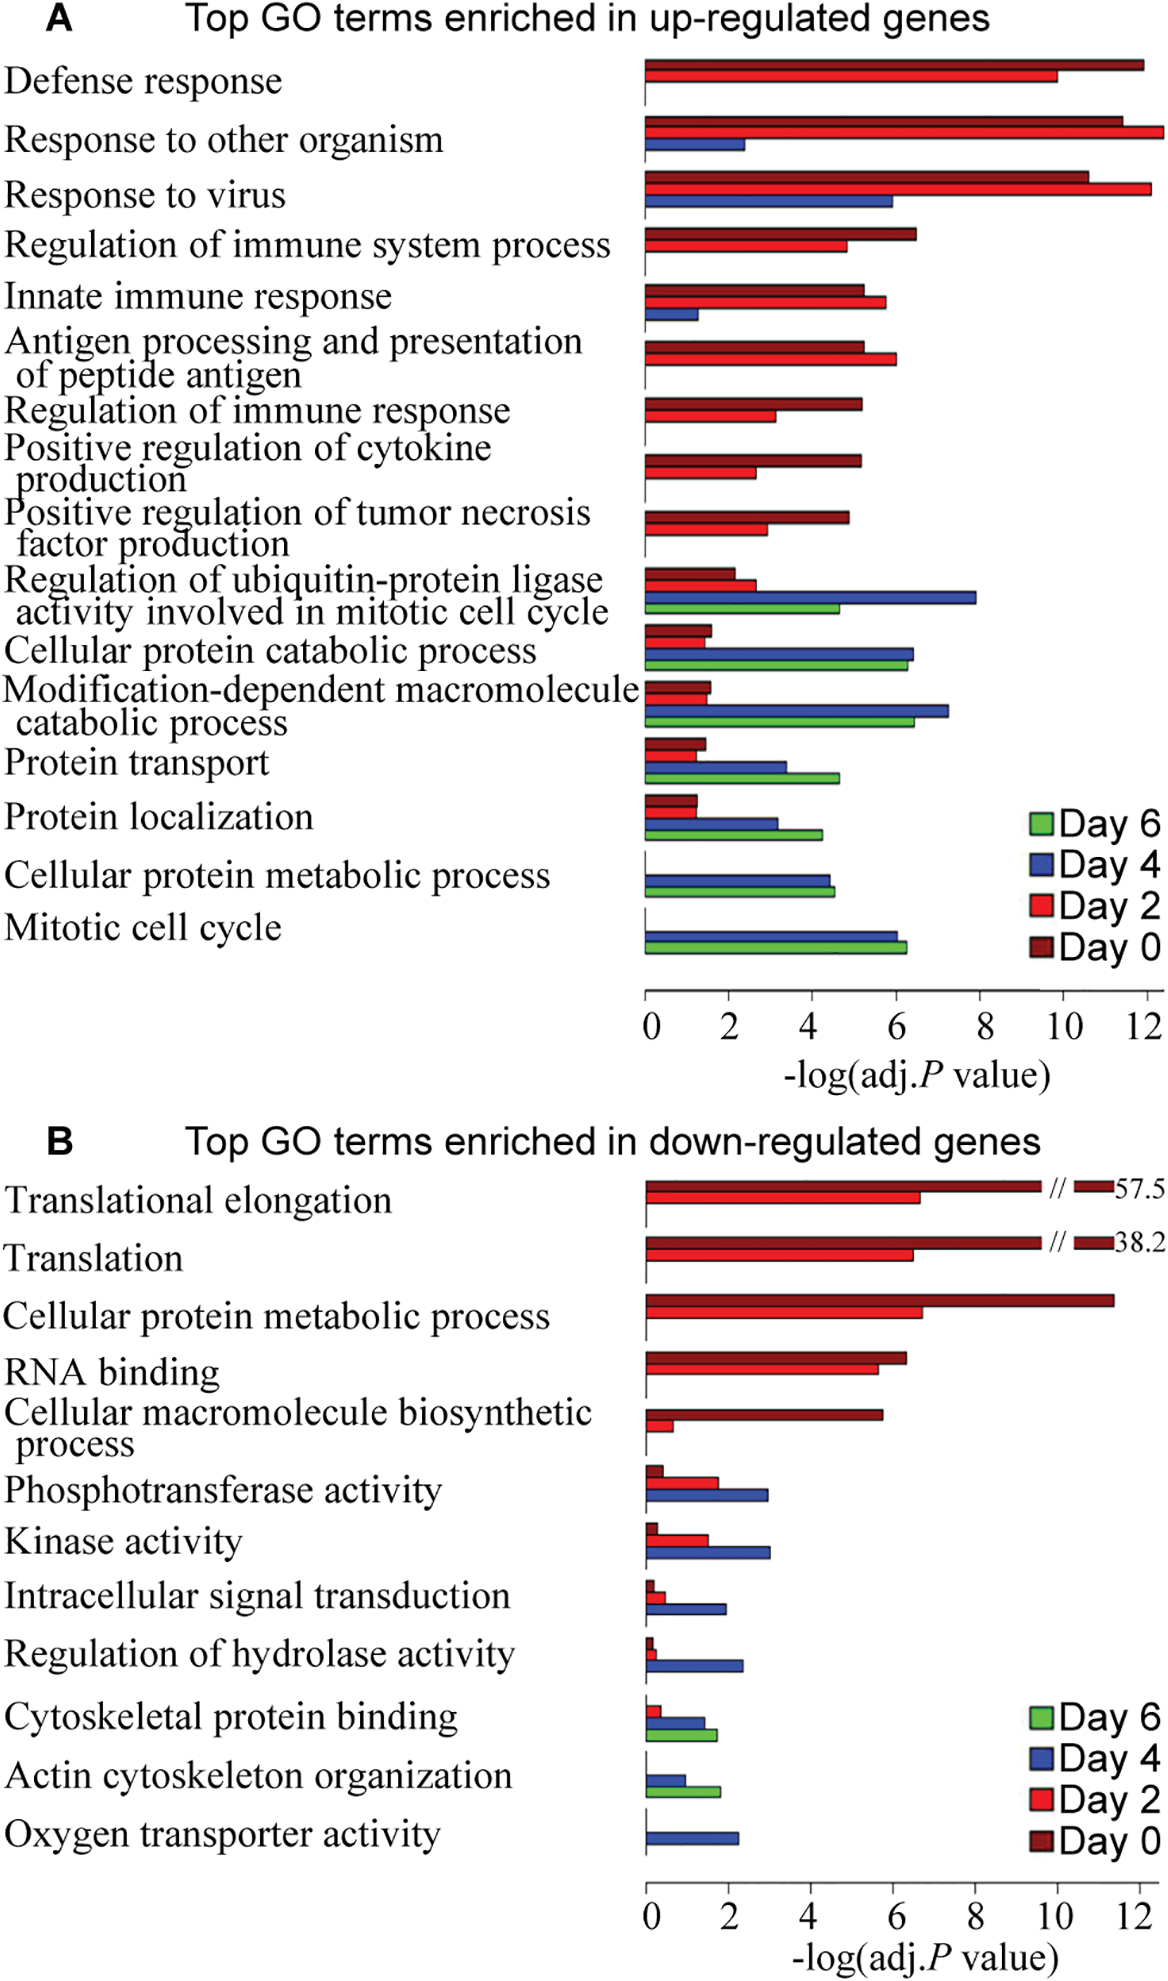 Top GO terms enriched in differentially expressed genes over the course of 6 days after influenza virus infection.